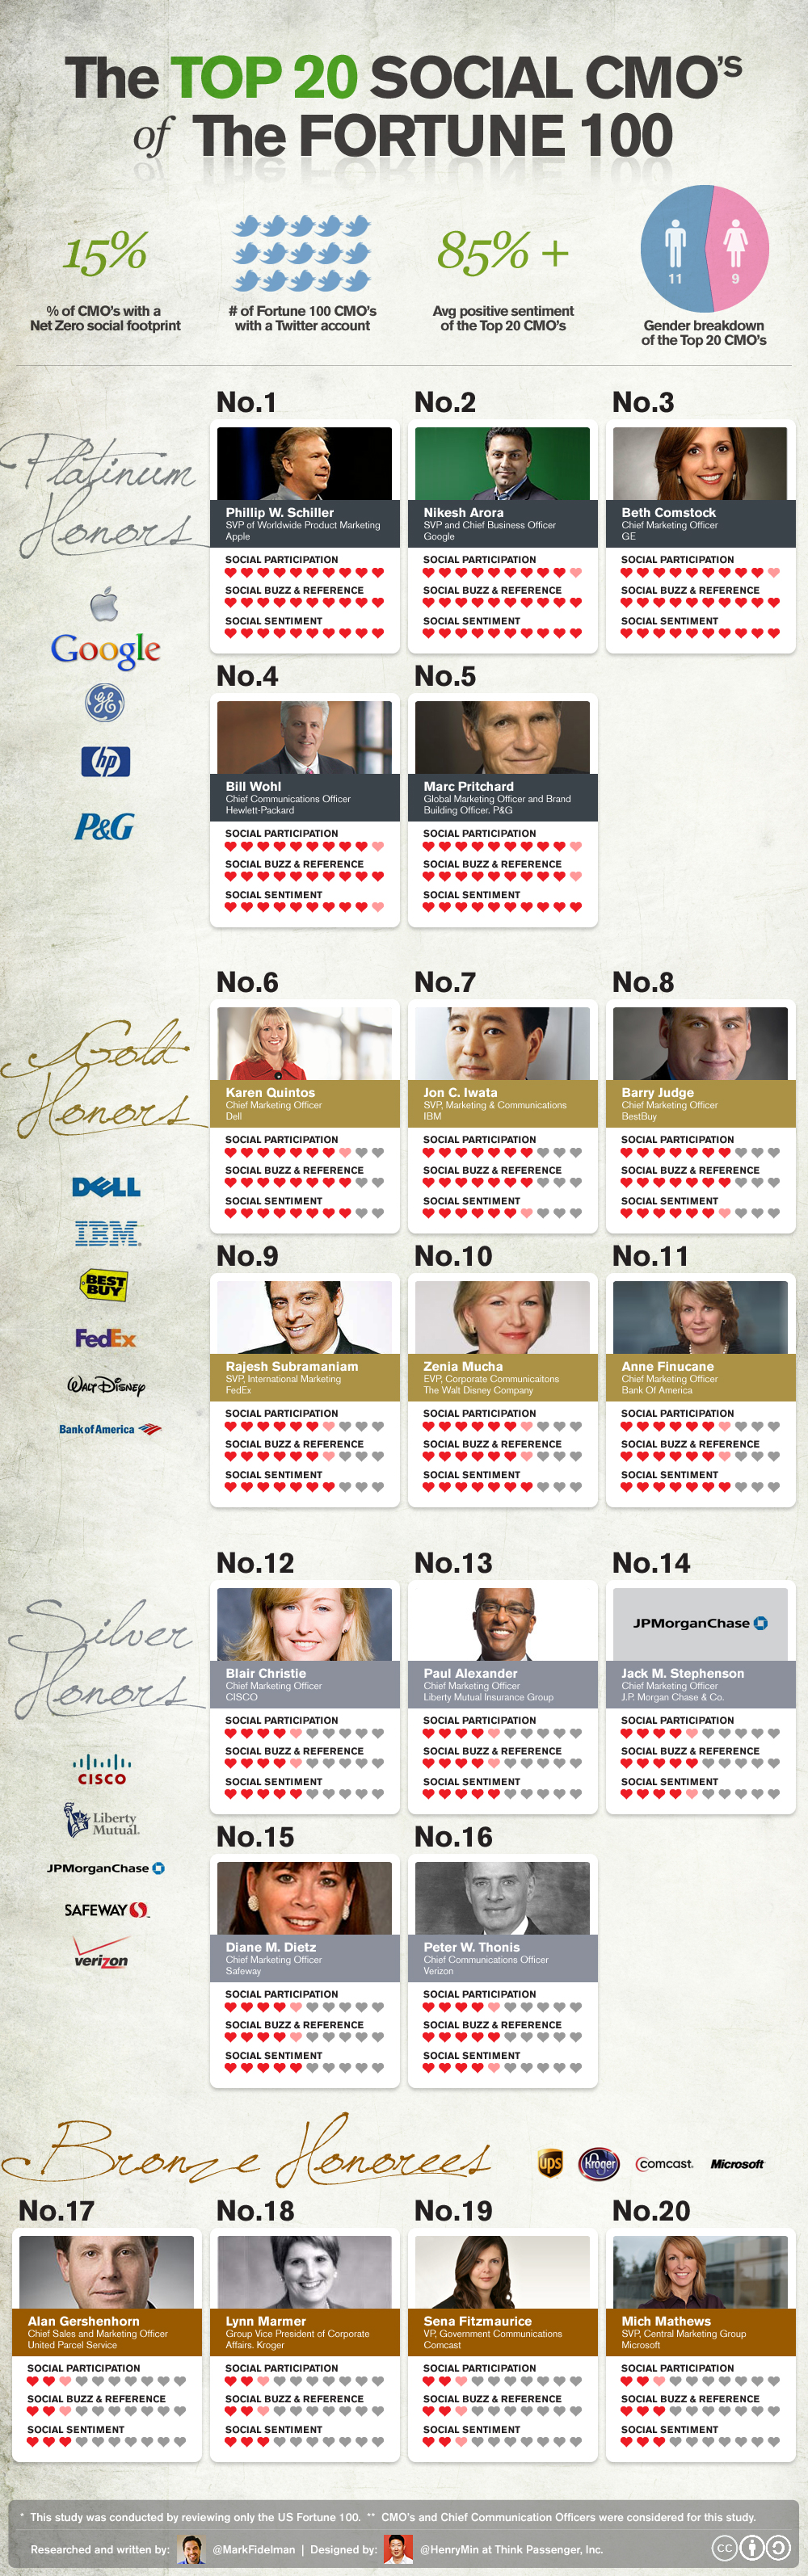 The Top 20 Social CMOs of the Fortune 100 (infographic)